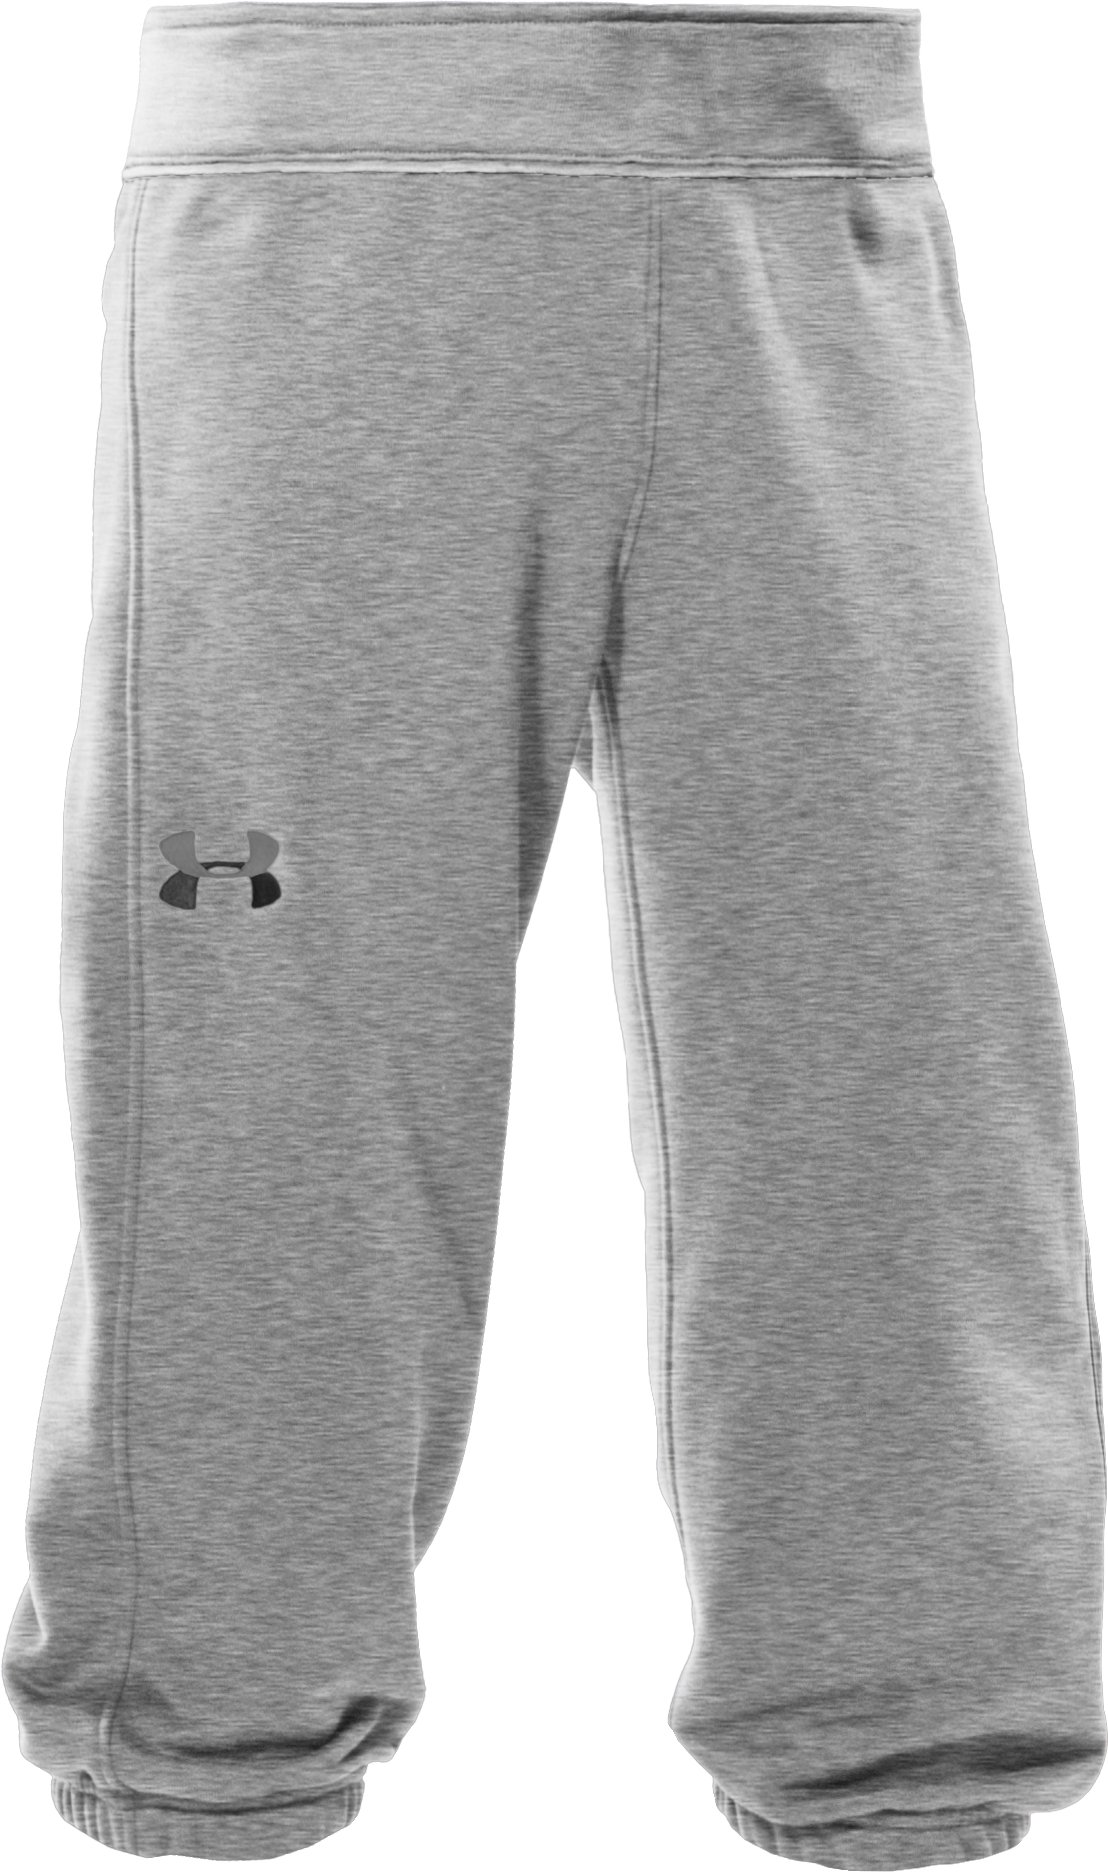 Girls' French Terry Capri Pants, True Gray Heather